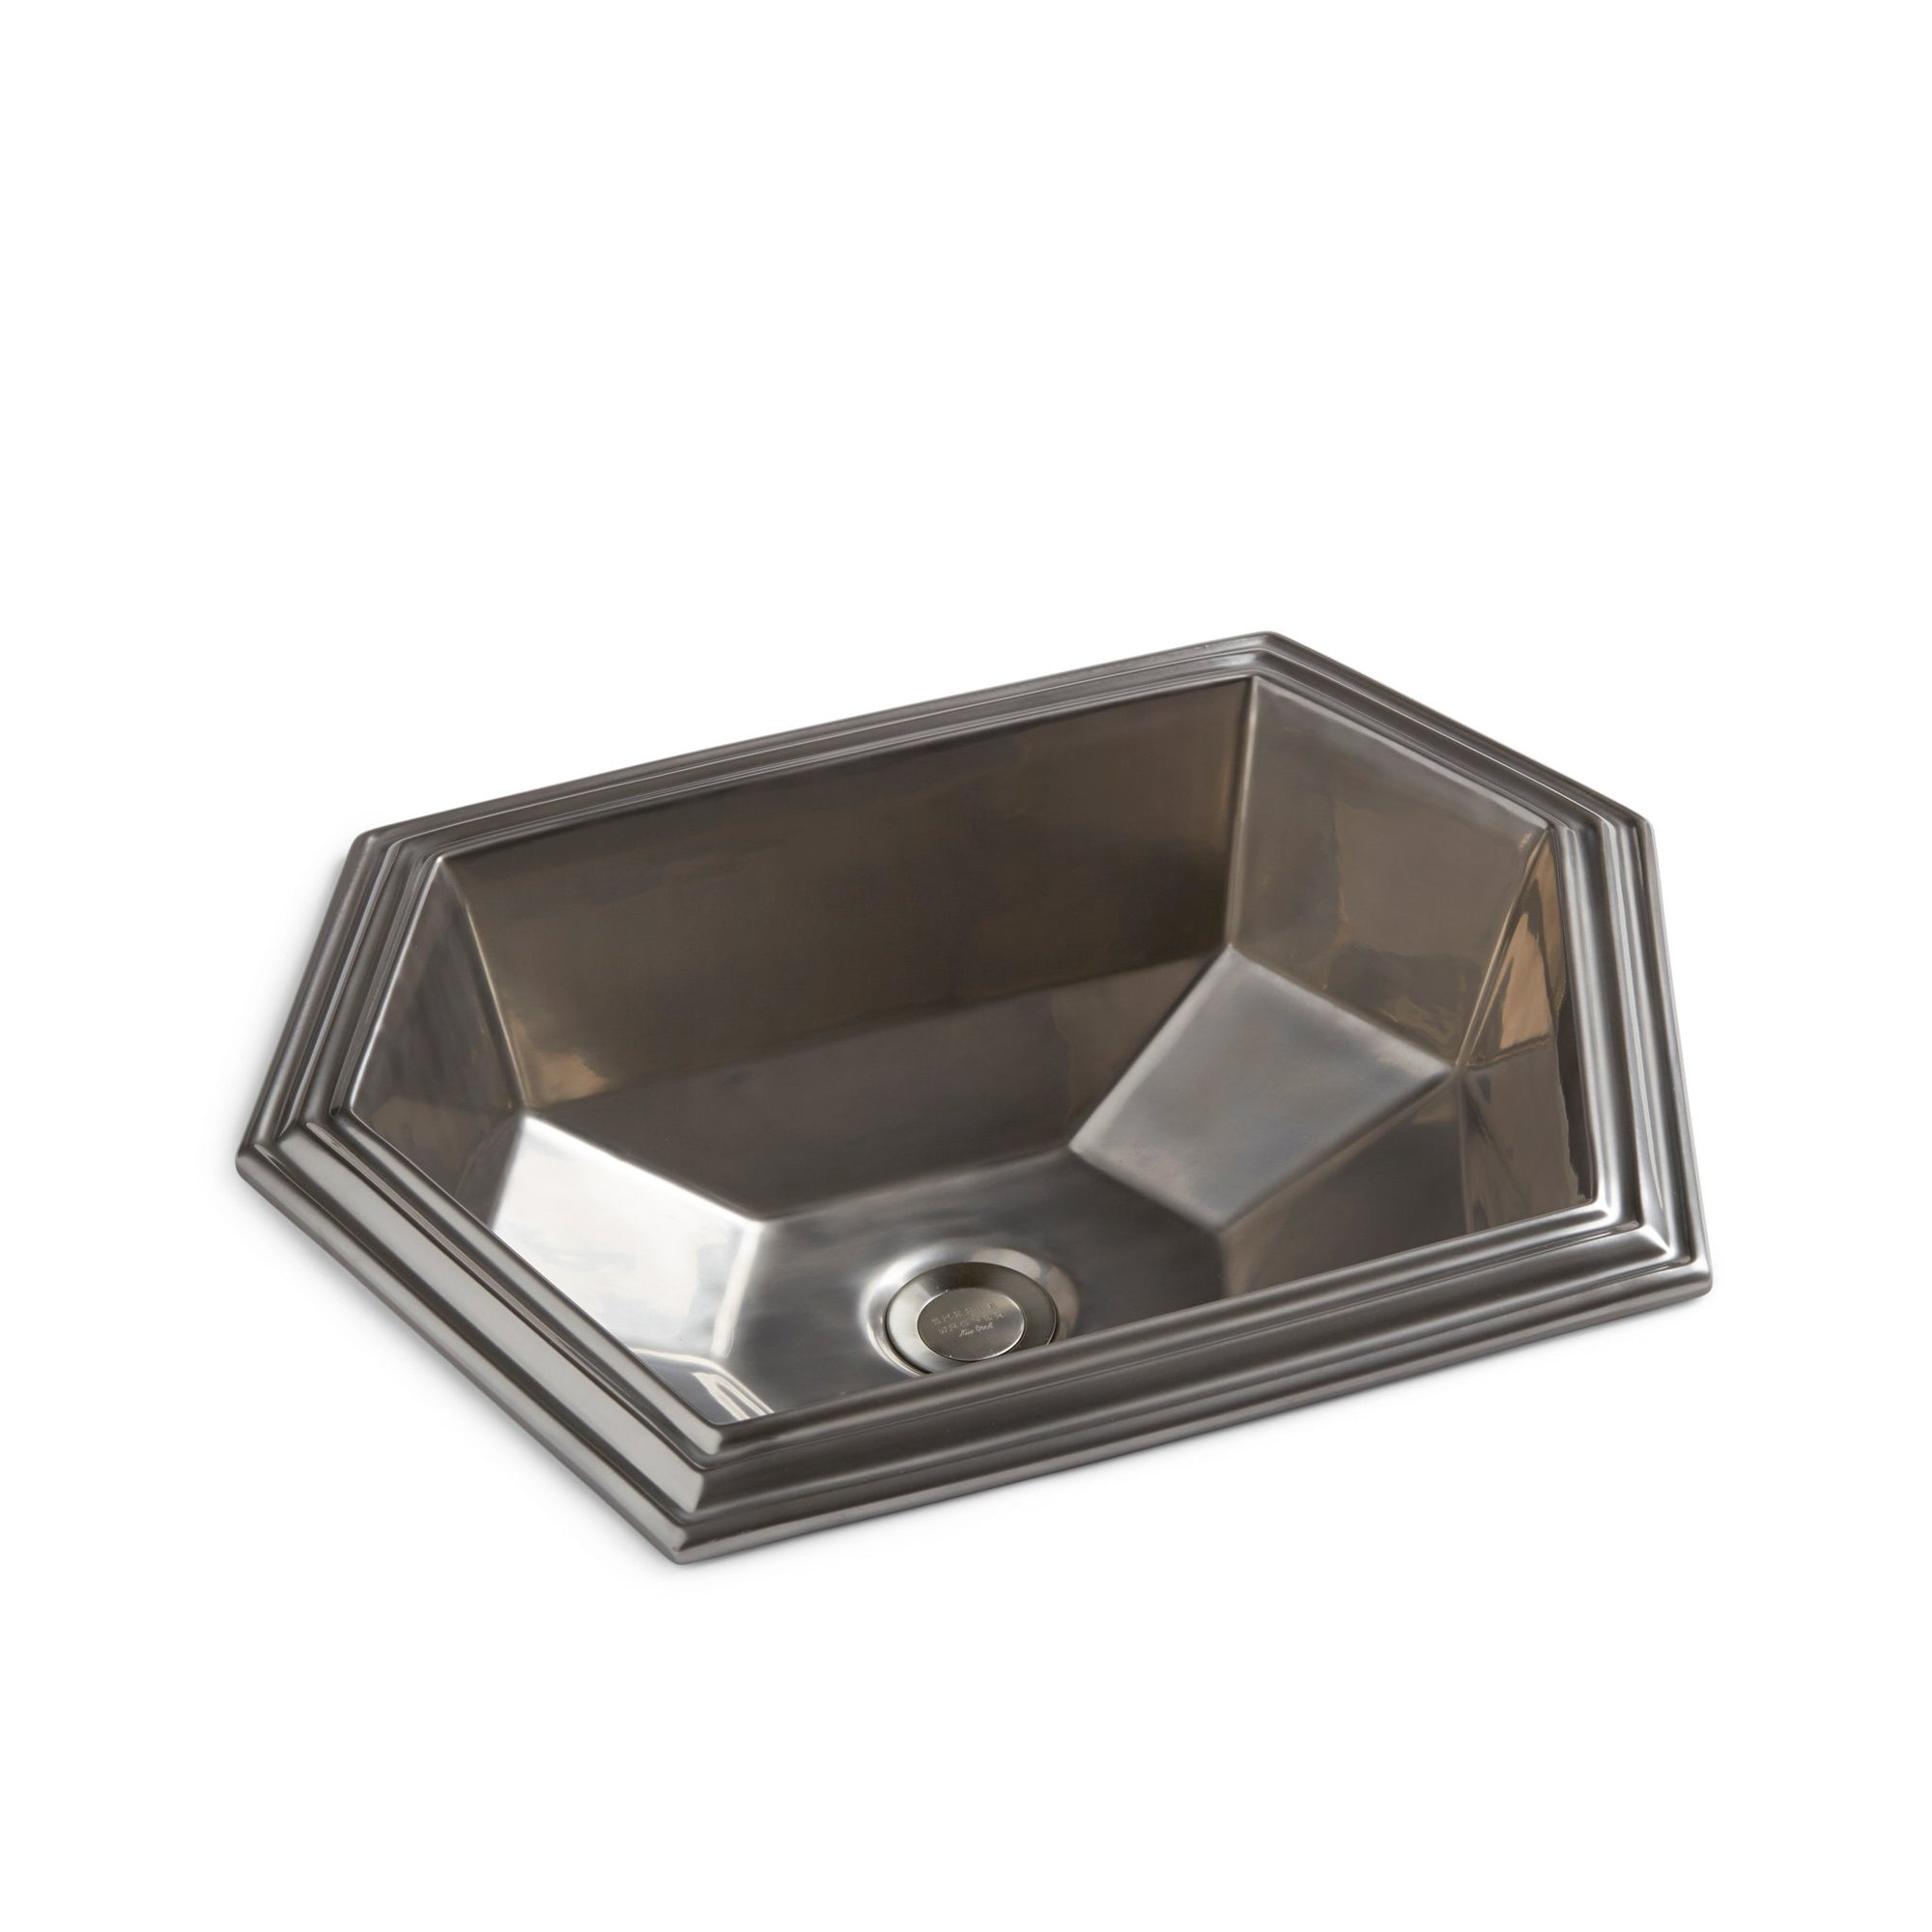 OE11-15PL Sherle Wagner International Burnished Platinum Glazed Modern Hexagon Ceramic Over Edge Sink